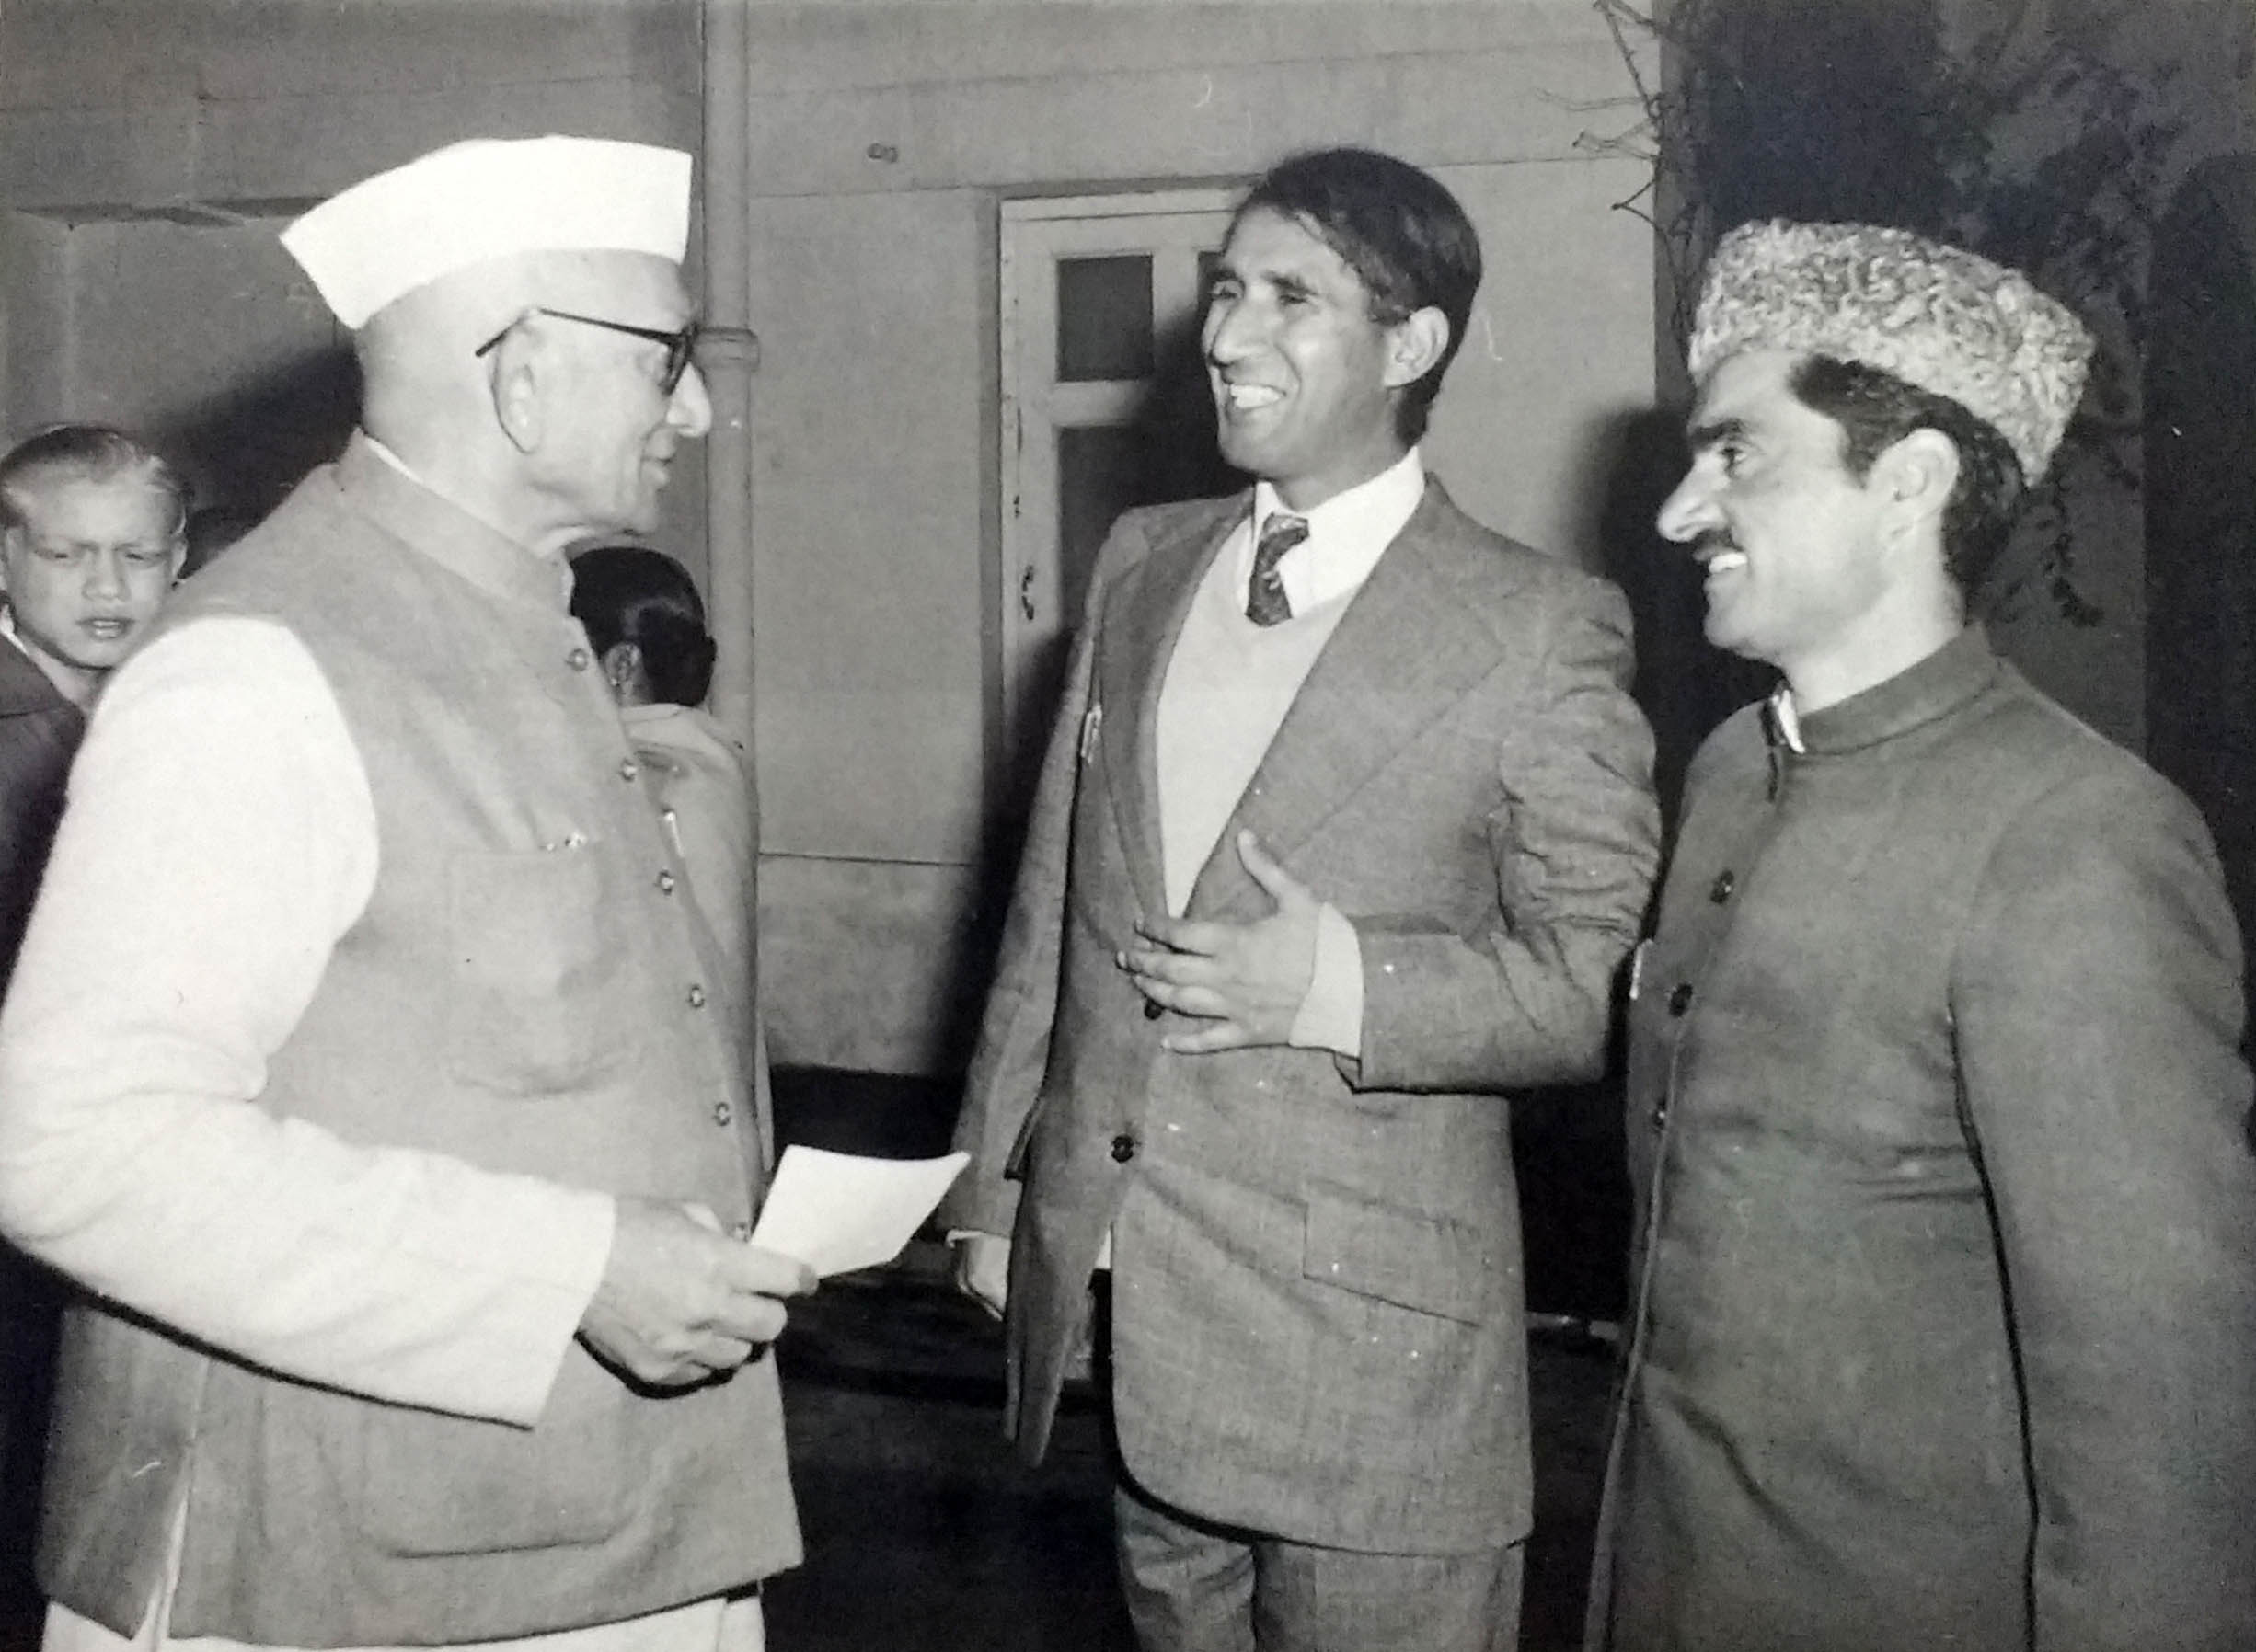 Abdul Rashid Kabuli (centre) with Prime Minister Morarji Desai. (Photo courtesy: Abdul Rashid Kabuli).